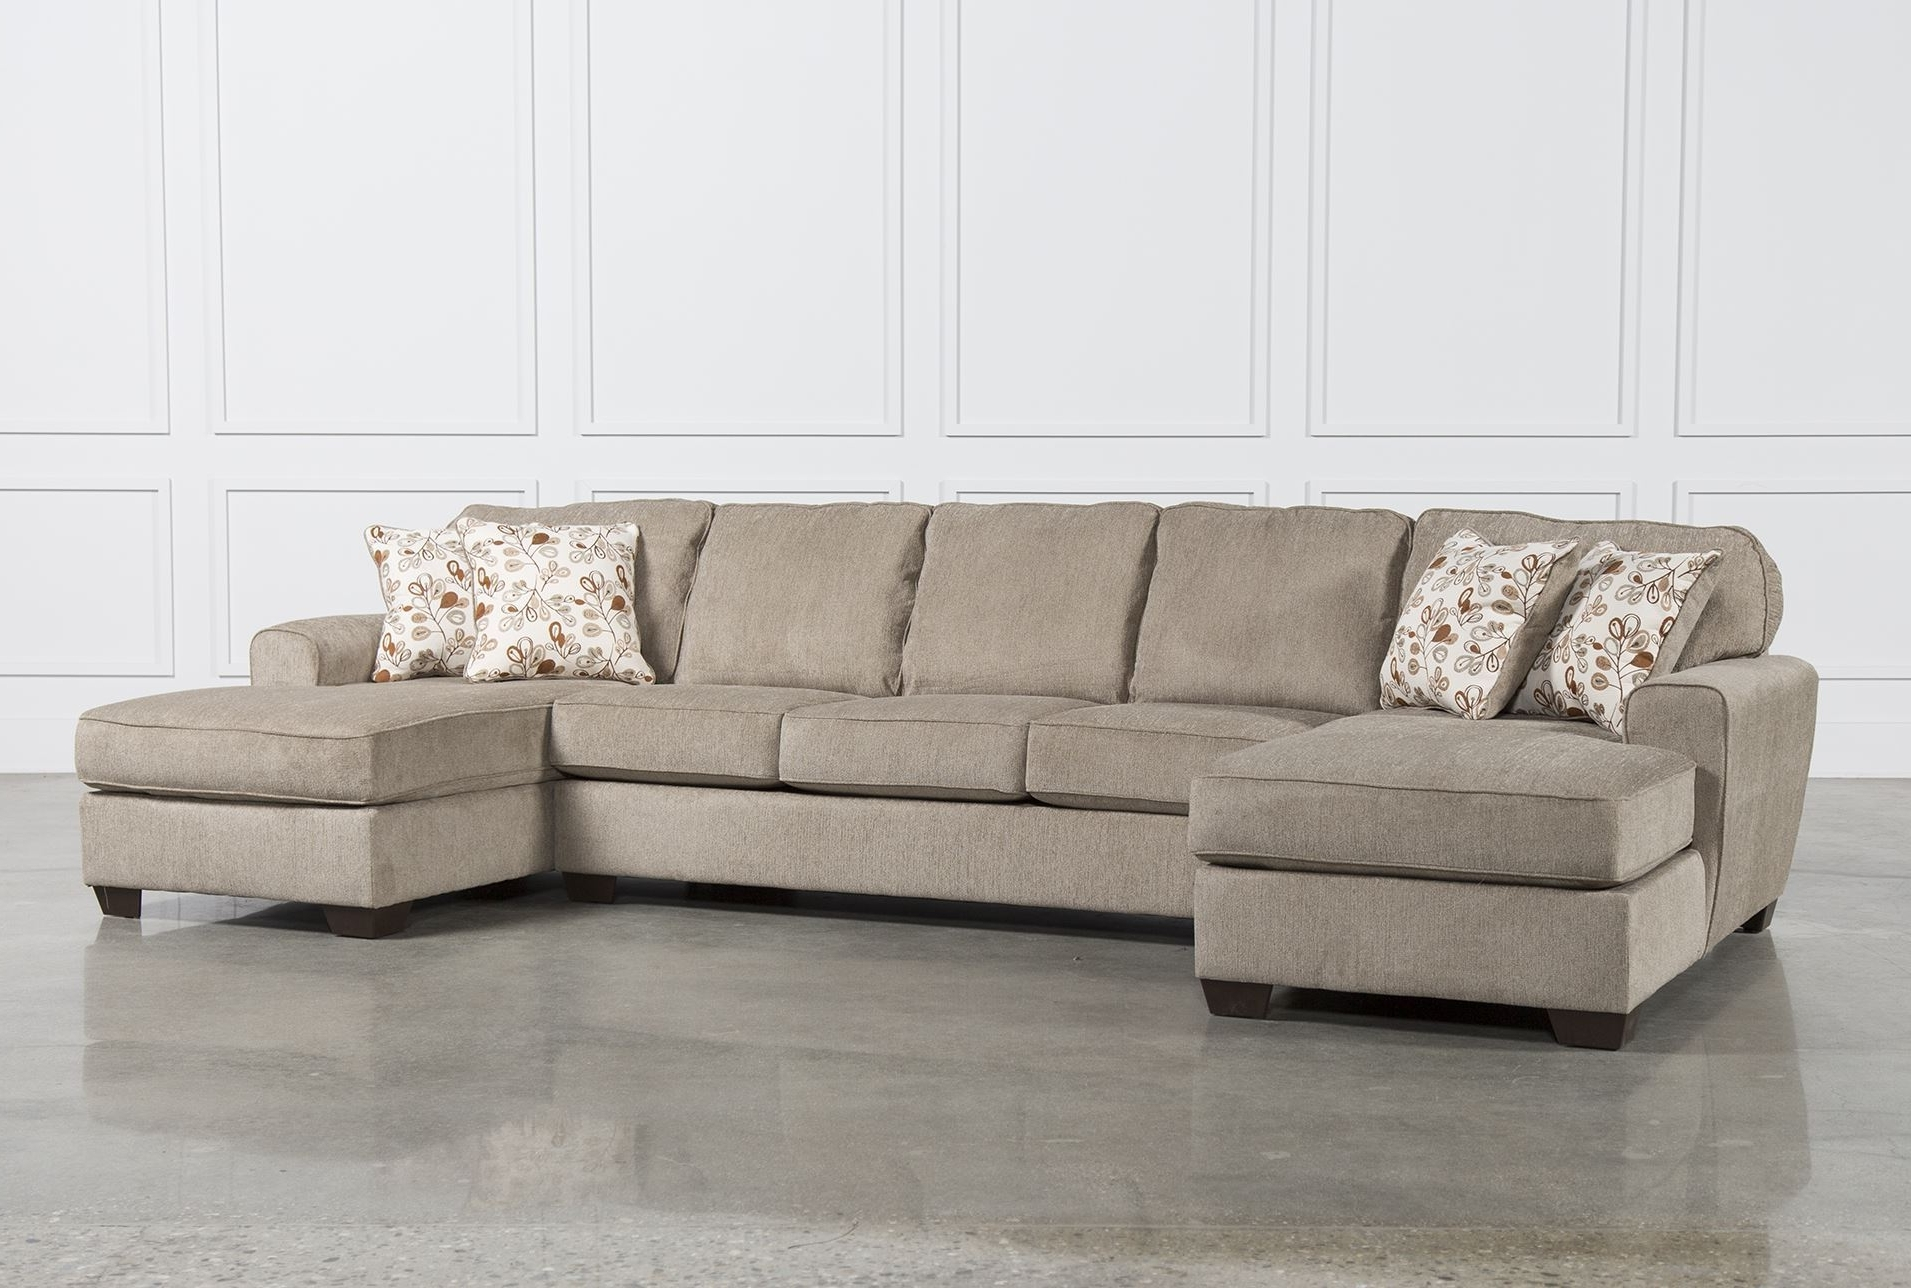 crate and barrel verano sofa smoke kob ben til sofabord sectional with 2 chaises home the honoroak